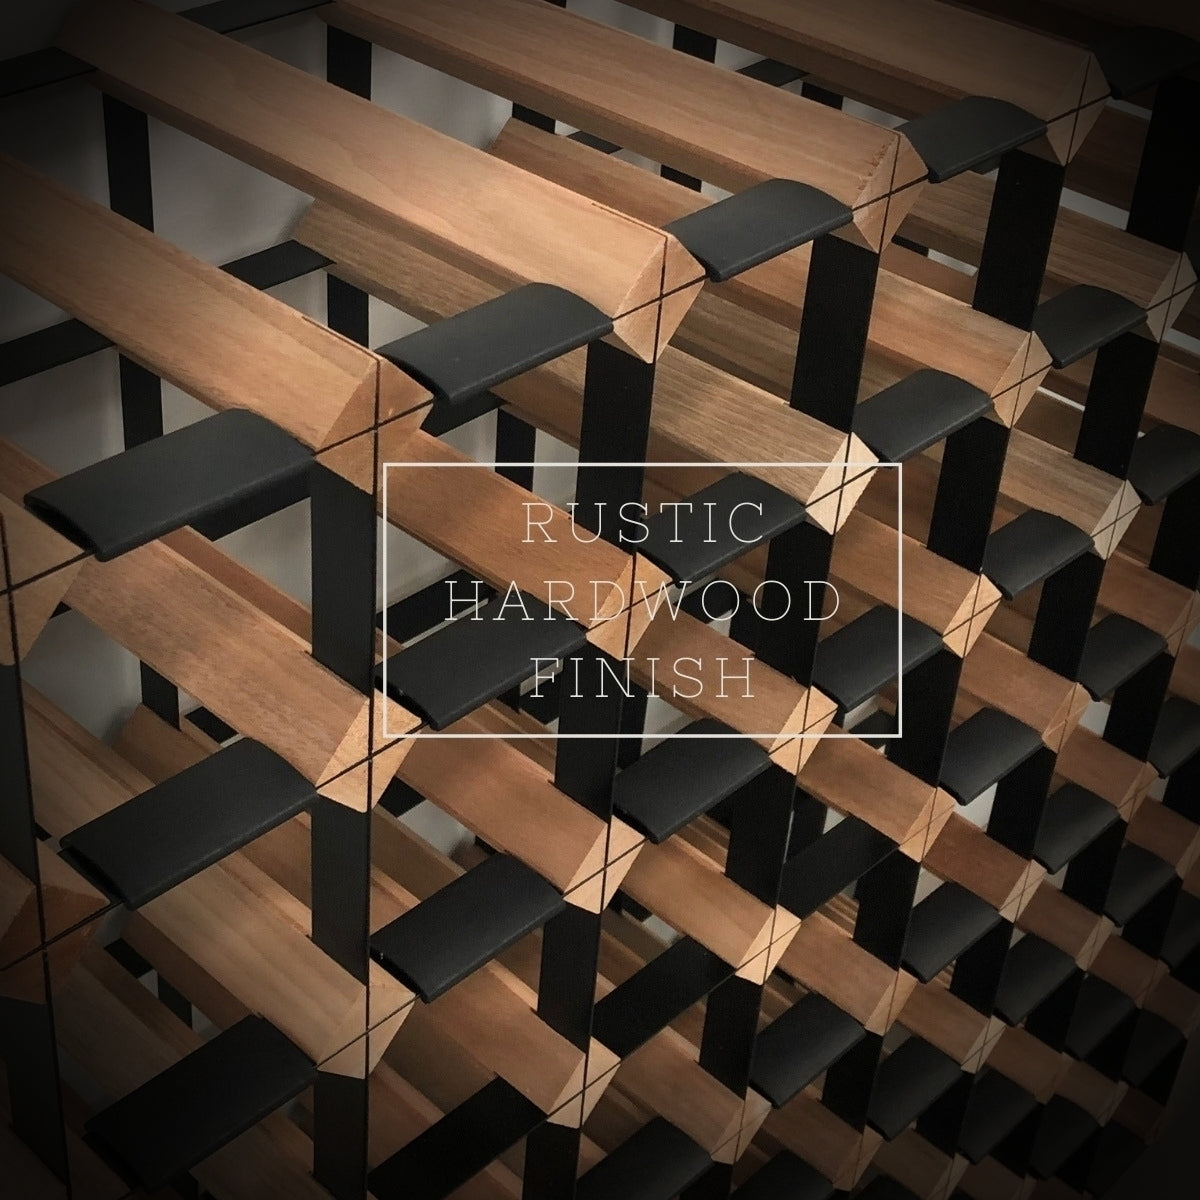 20 Bottle Timber Wine Rack | 4x4 Configuration